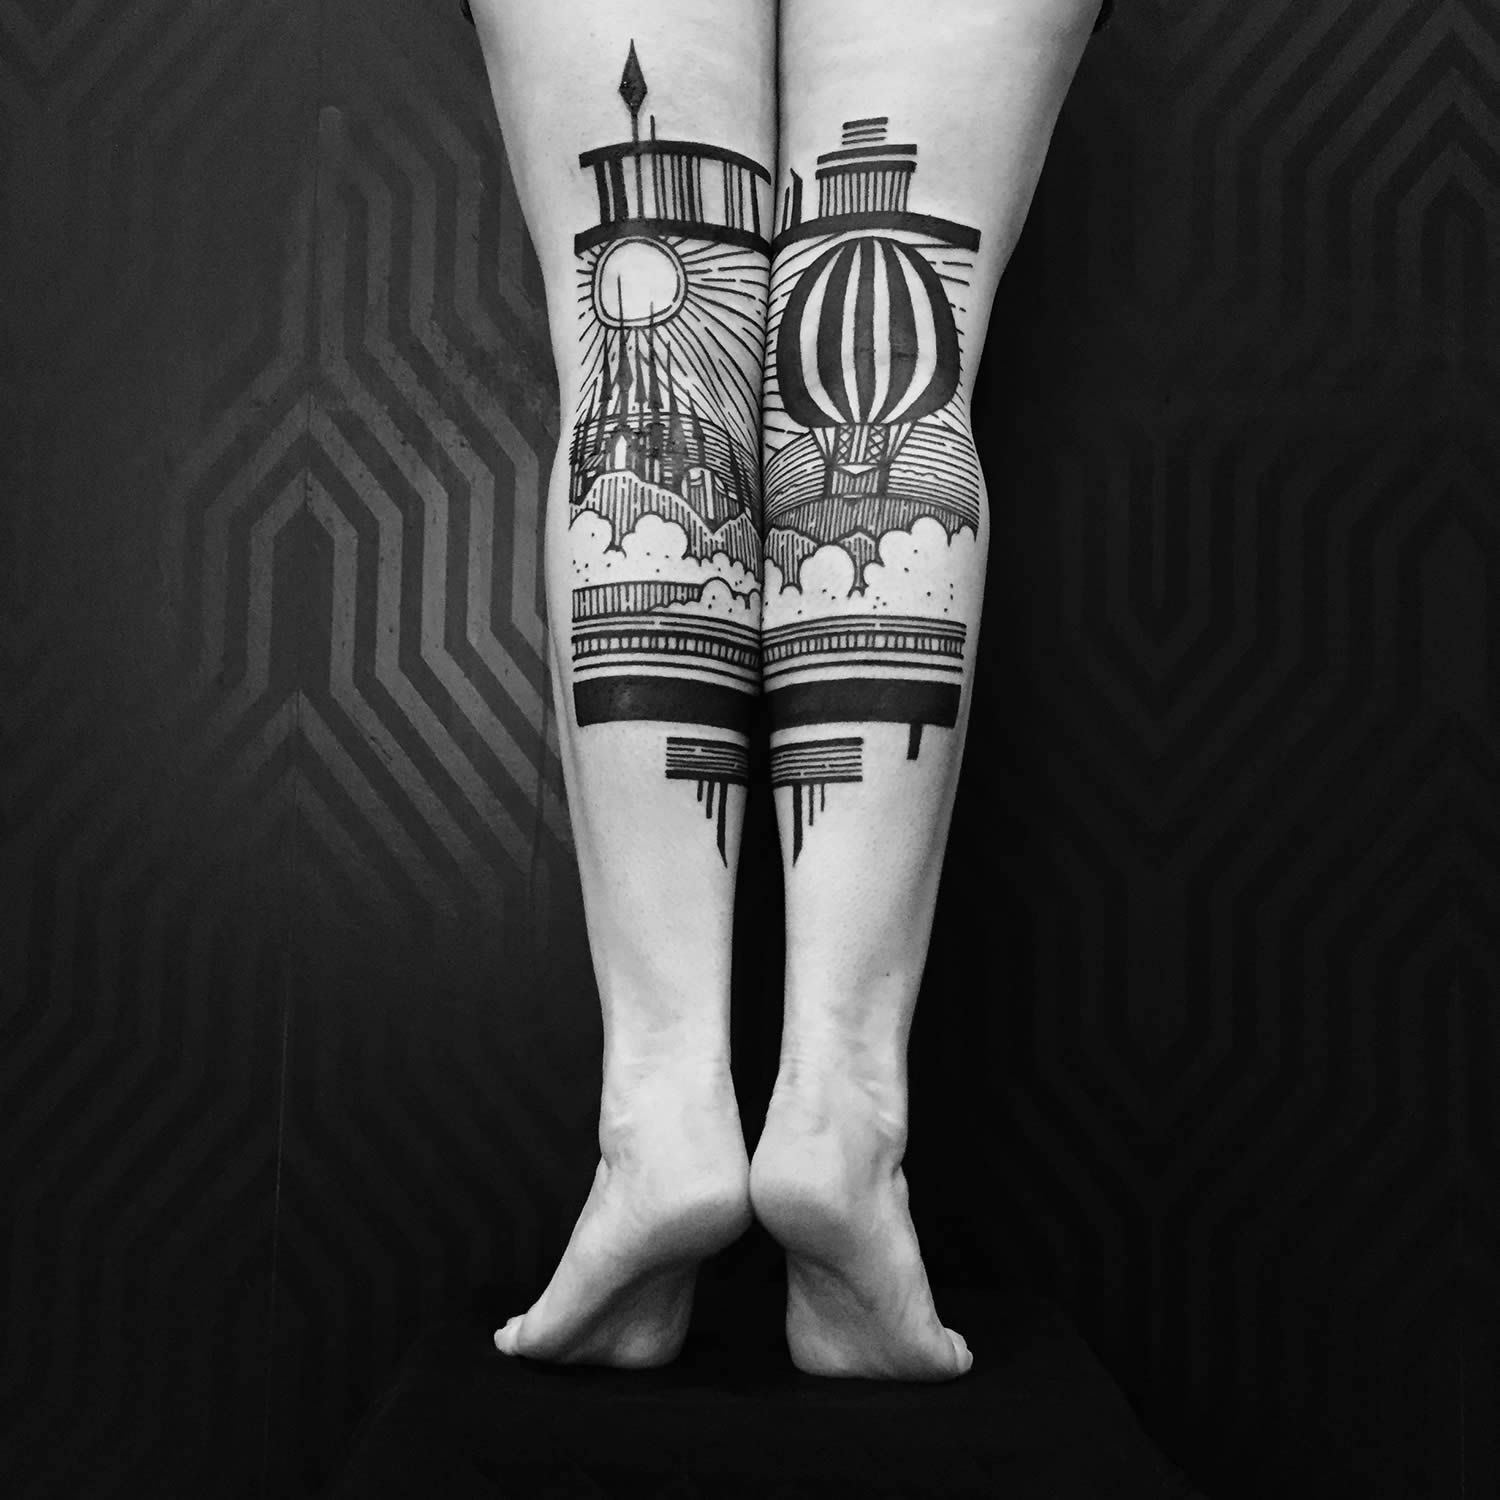 black ink tattoo on legs by thieves of tower